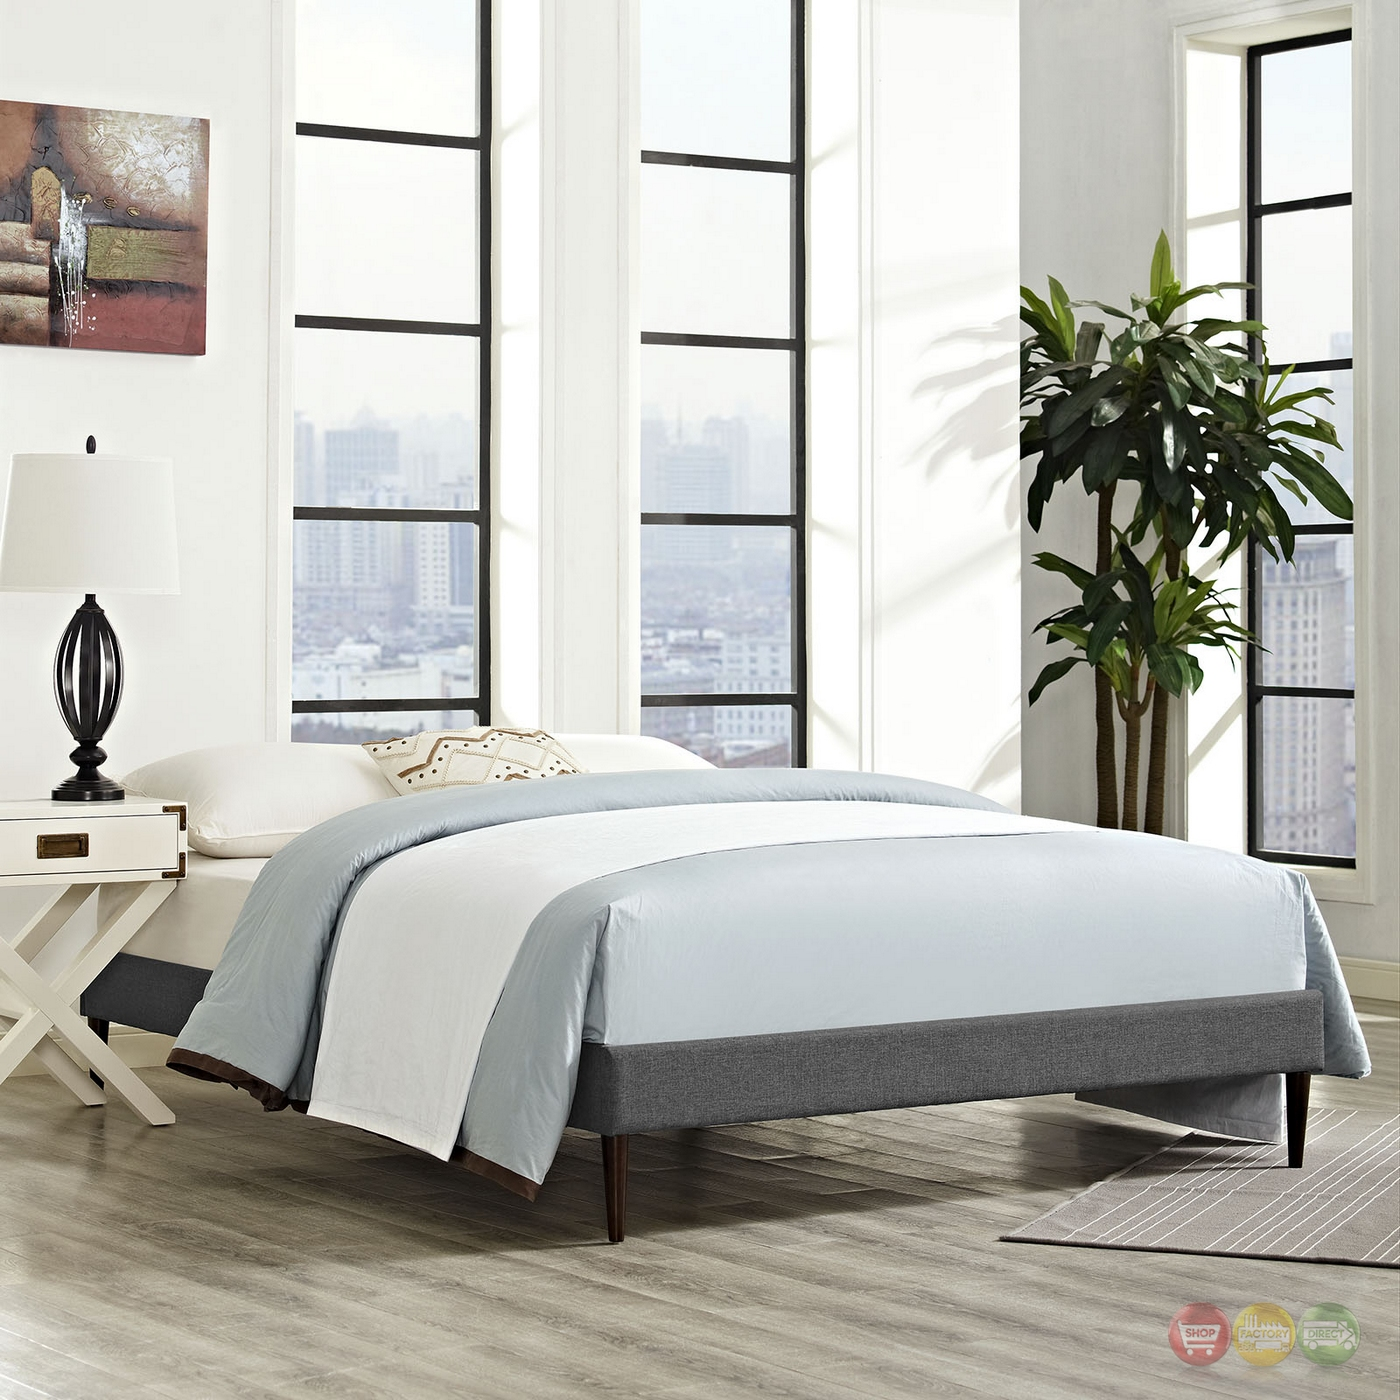 Sherry Upholstered Fabric King Platform Bed Frame Gray